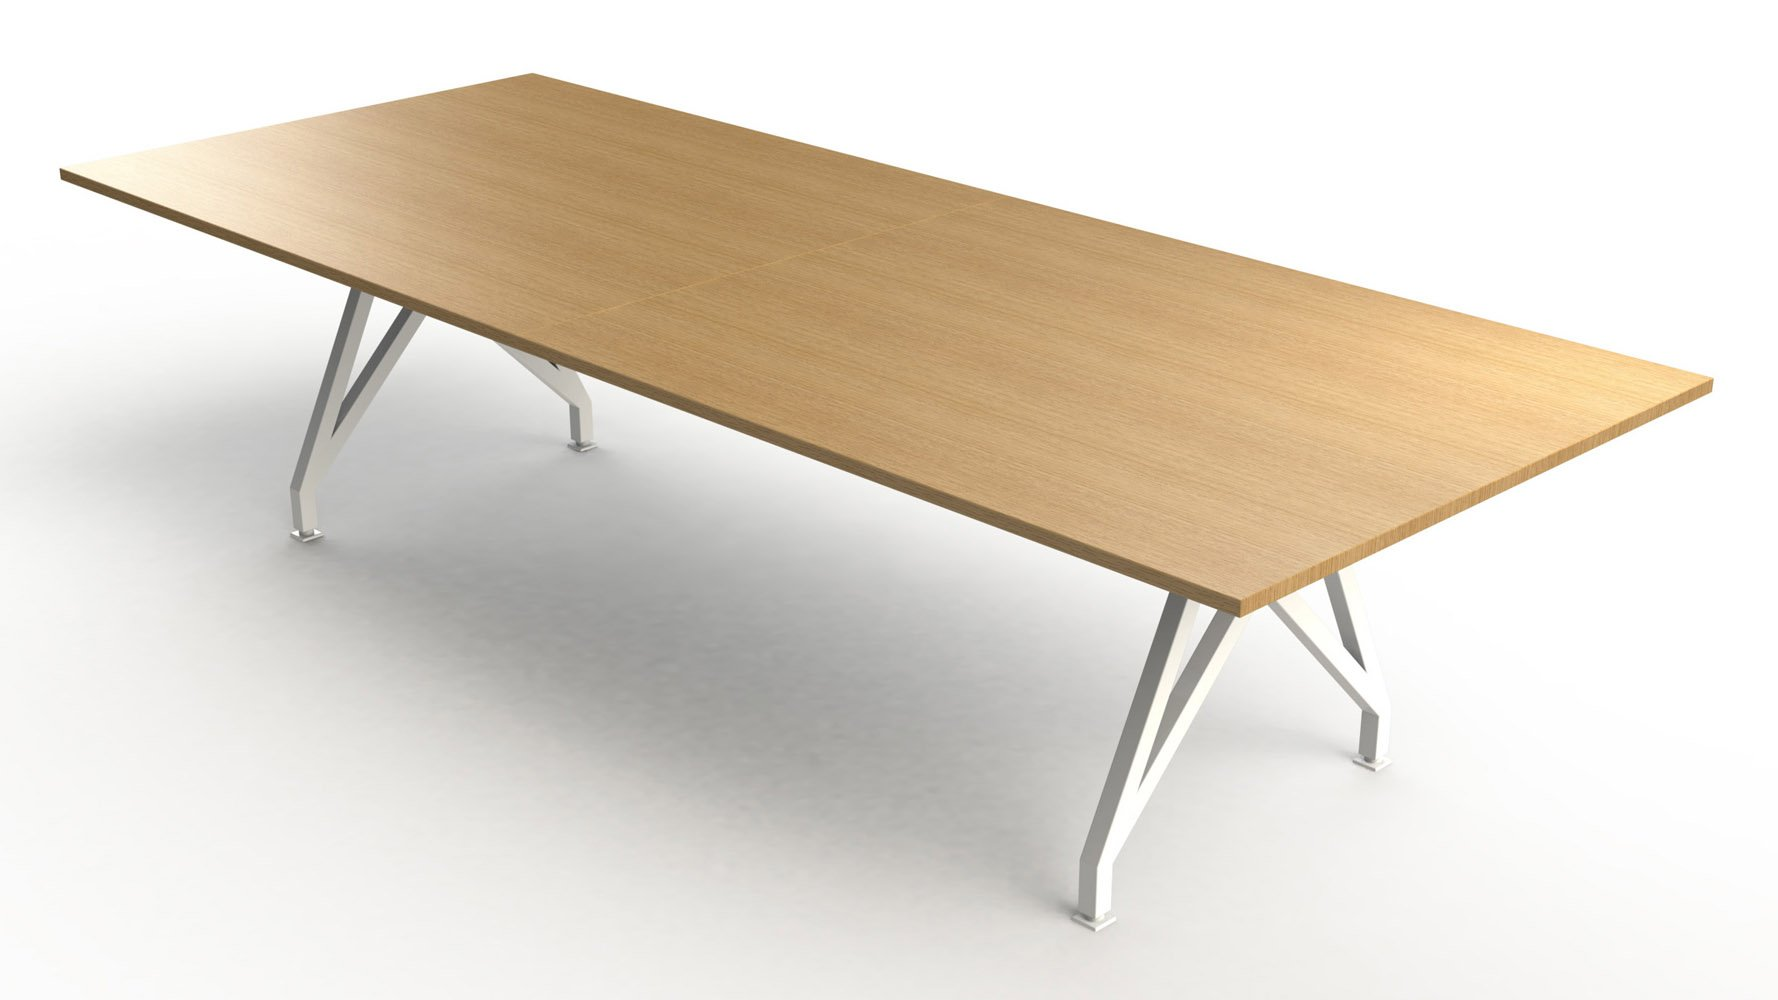 THINK TANK Conference Table Ft Zuri Furniture - 8 ft conference table